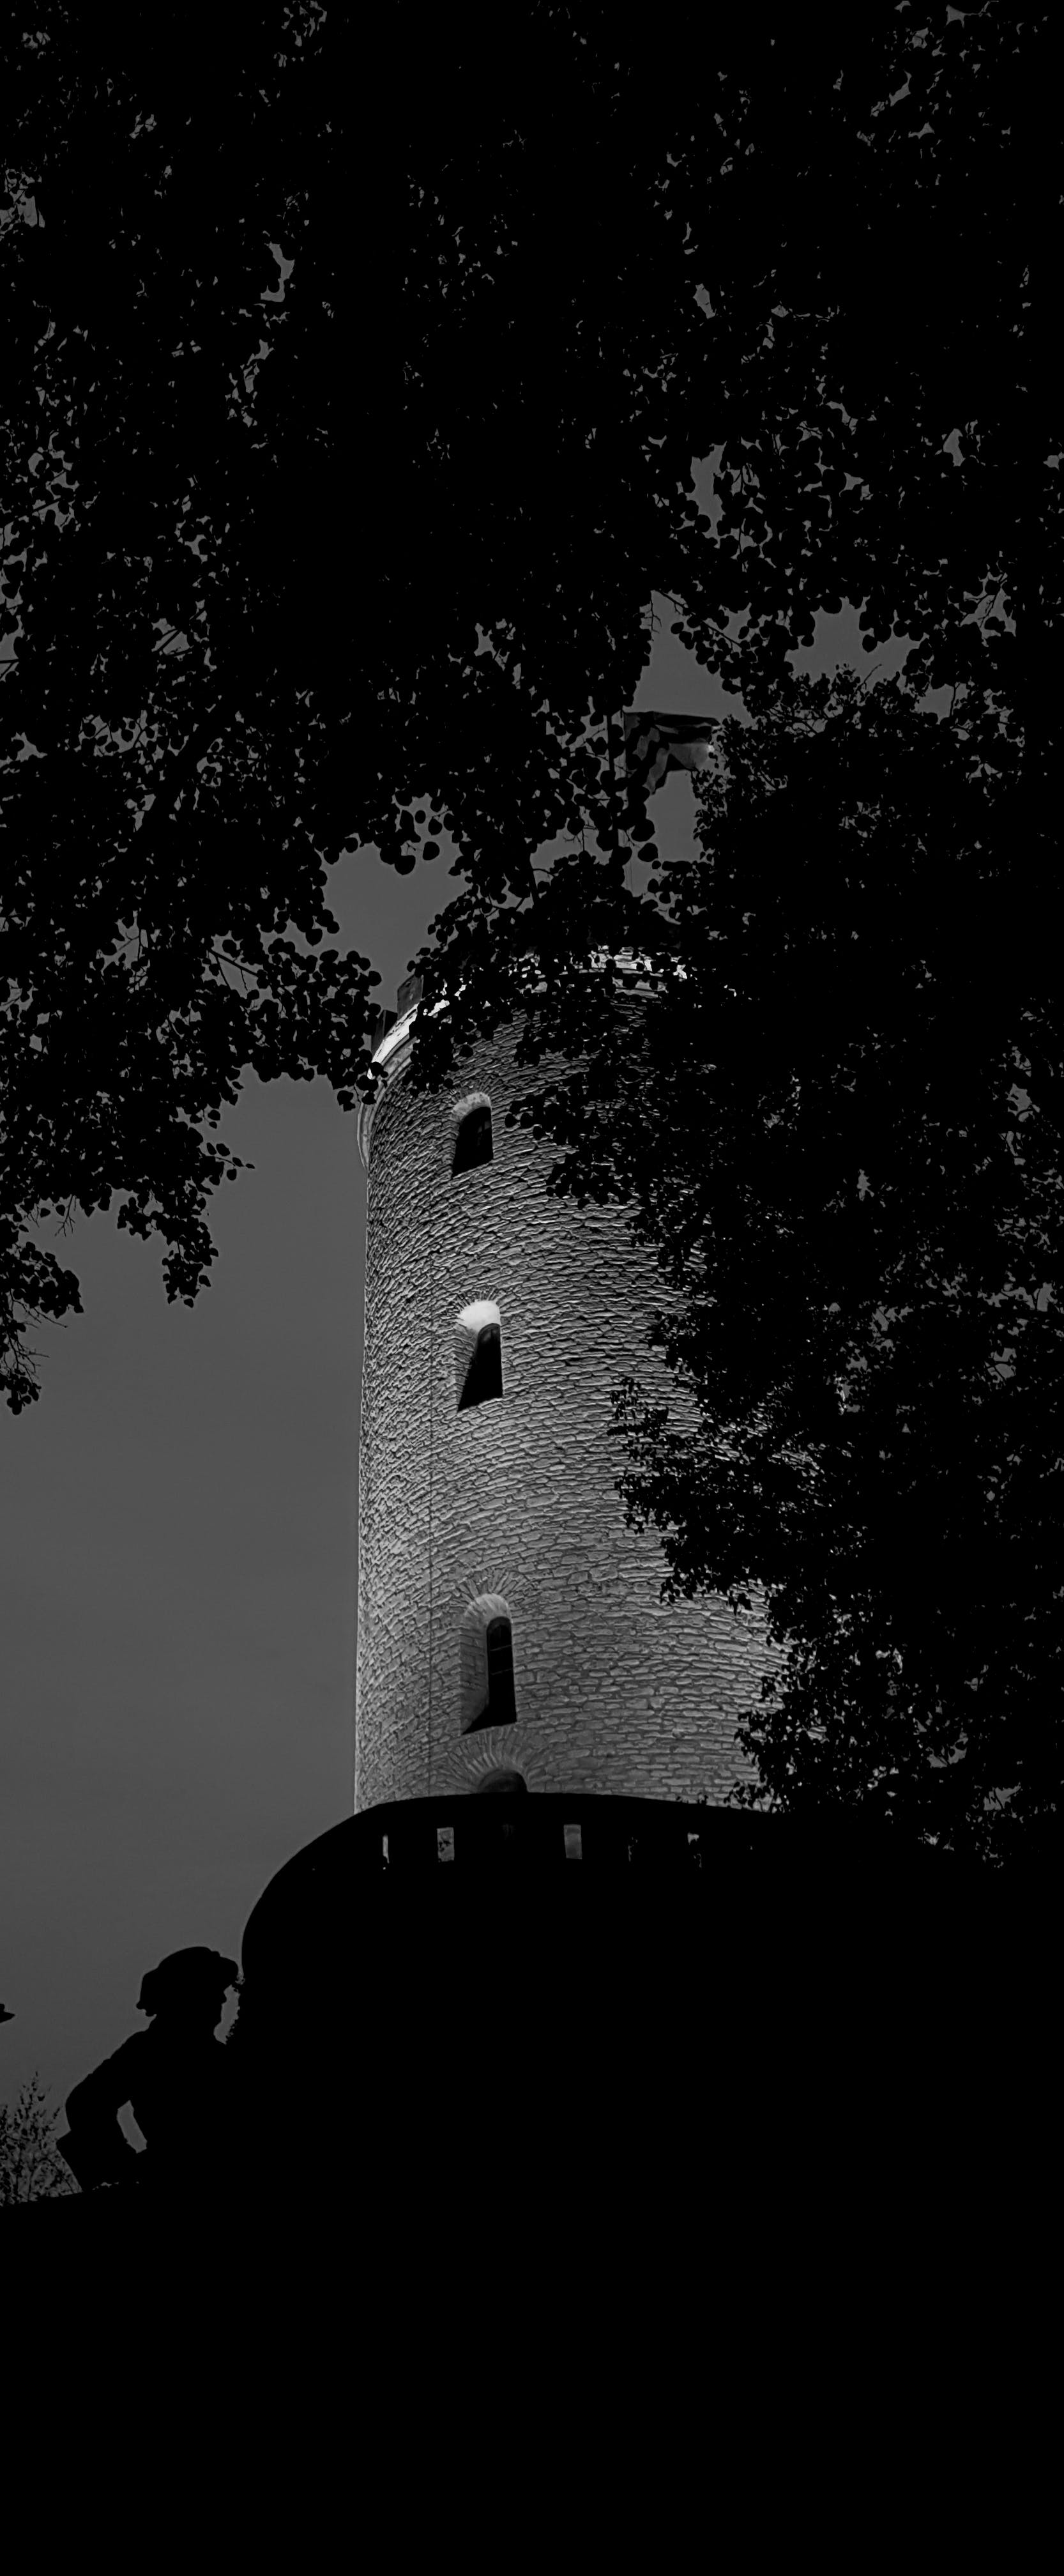 Free stock photo of bell tower, black and white, castle, dark